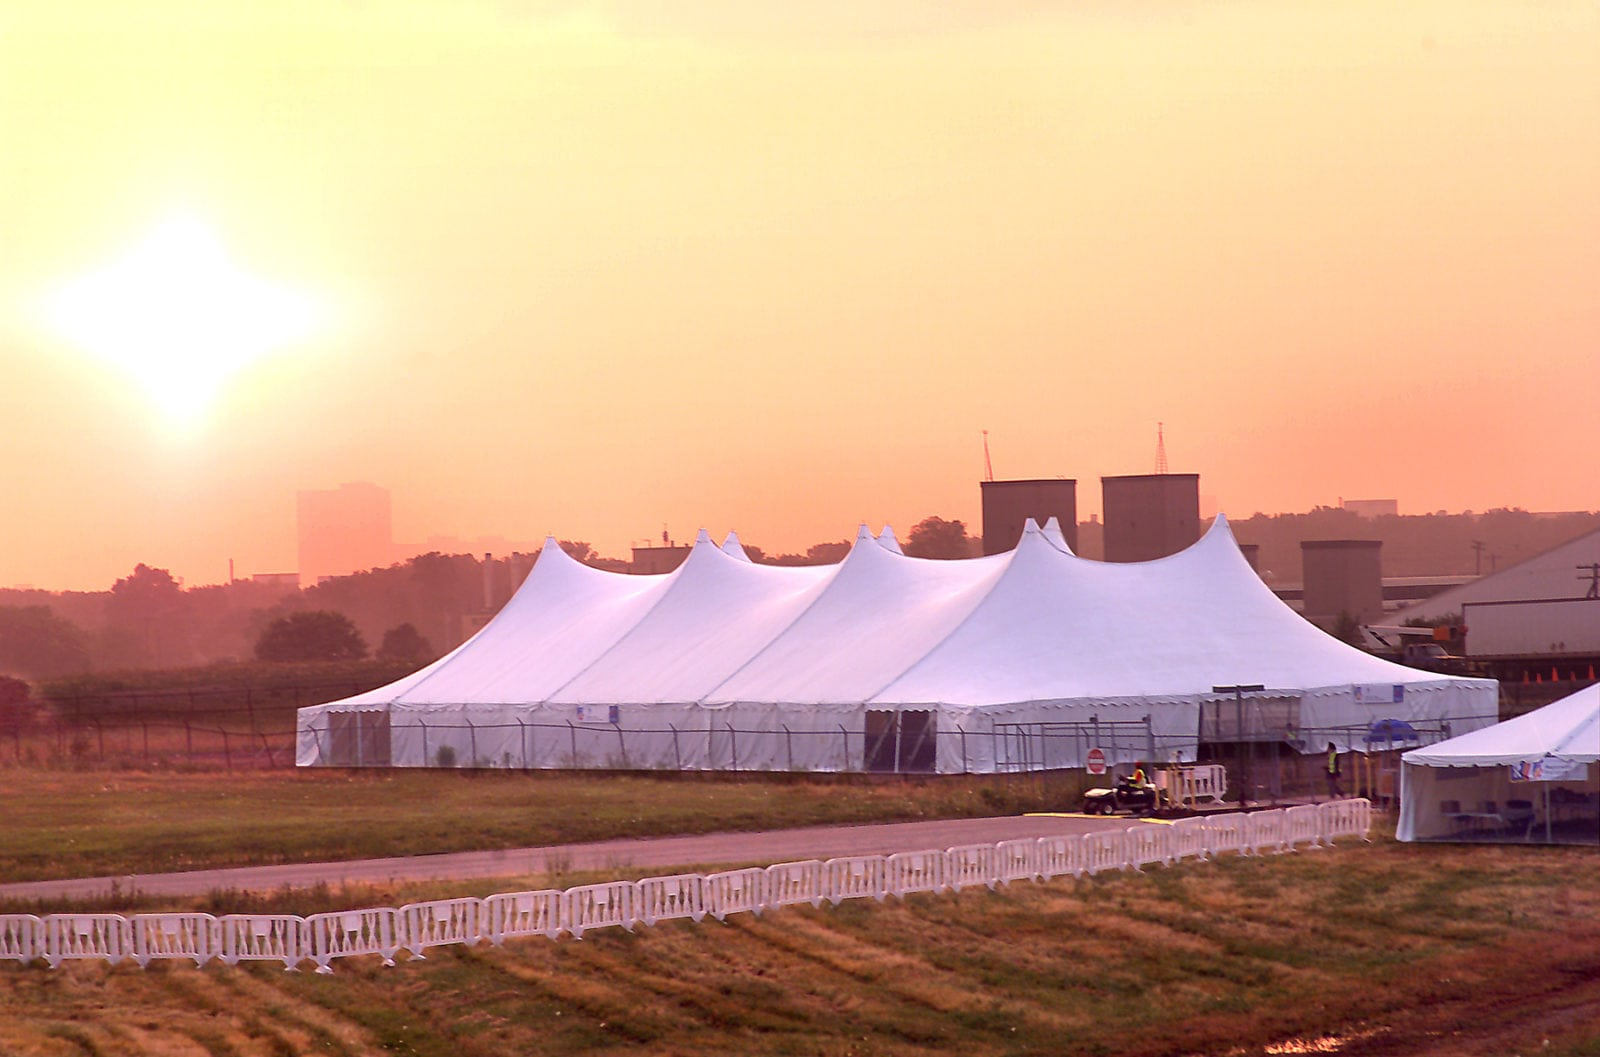 The roots of the tenting industry arguably lie back hundreds of years and itu0027s always interesting to look at how temporary tented venues came to be part of ... & The Evolution of the Circus Tent and Temporary Venues - Regal Tent ...